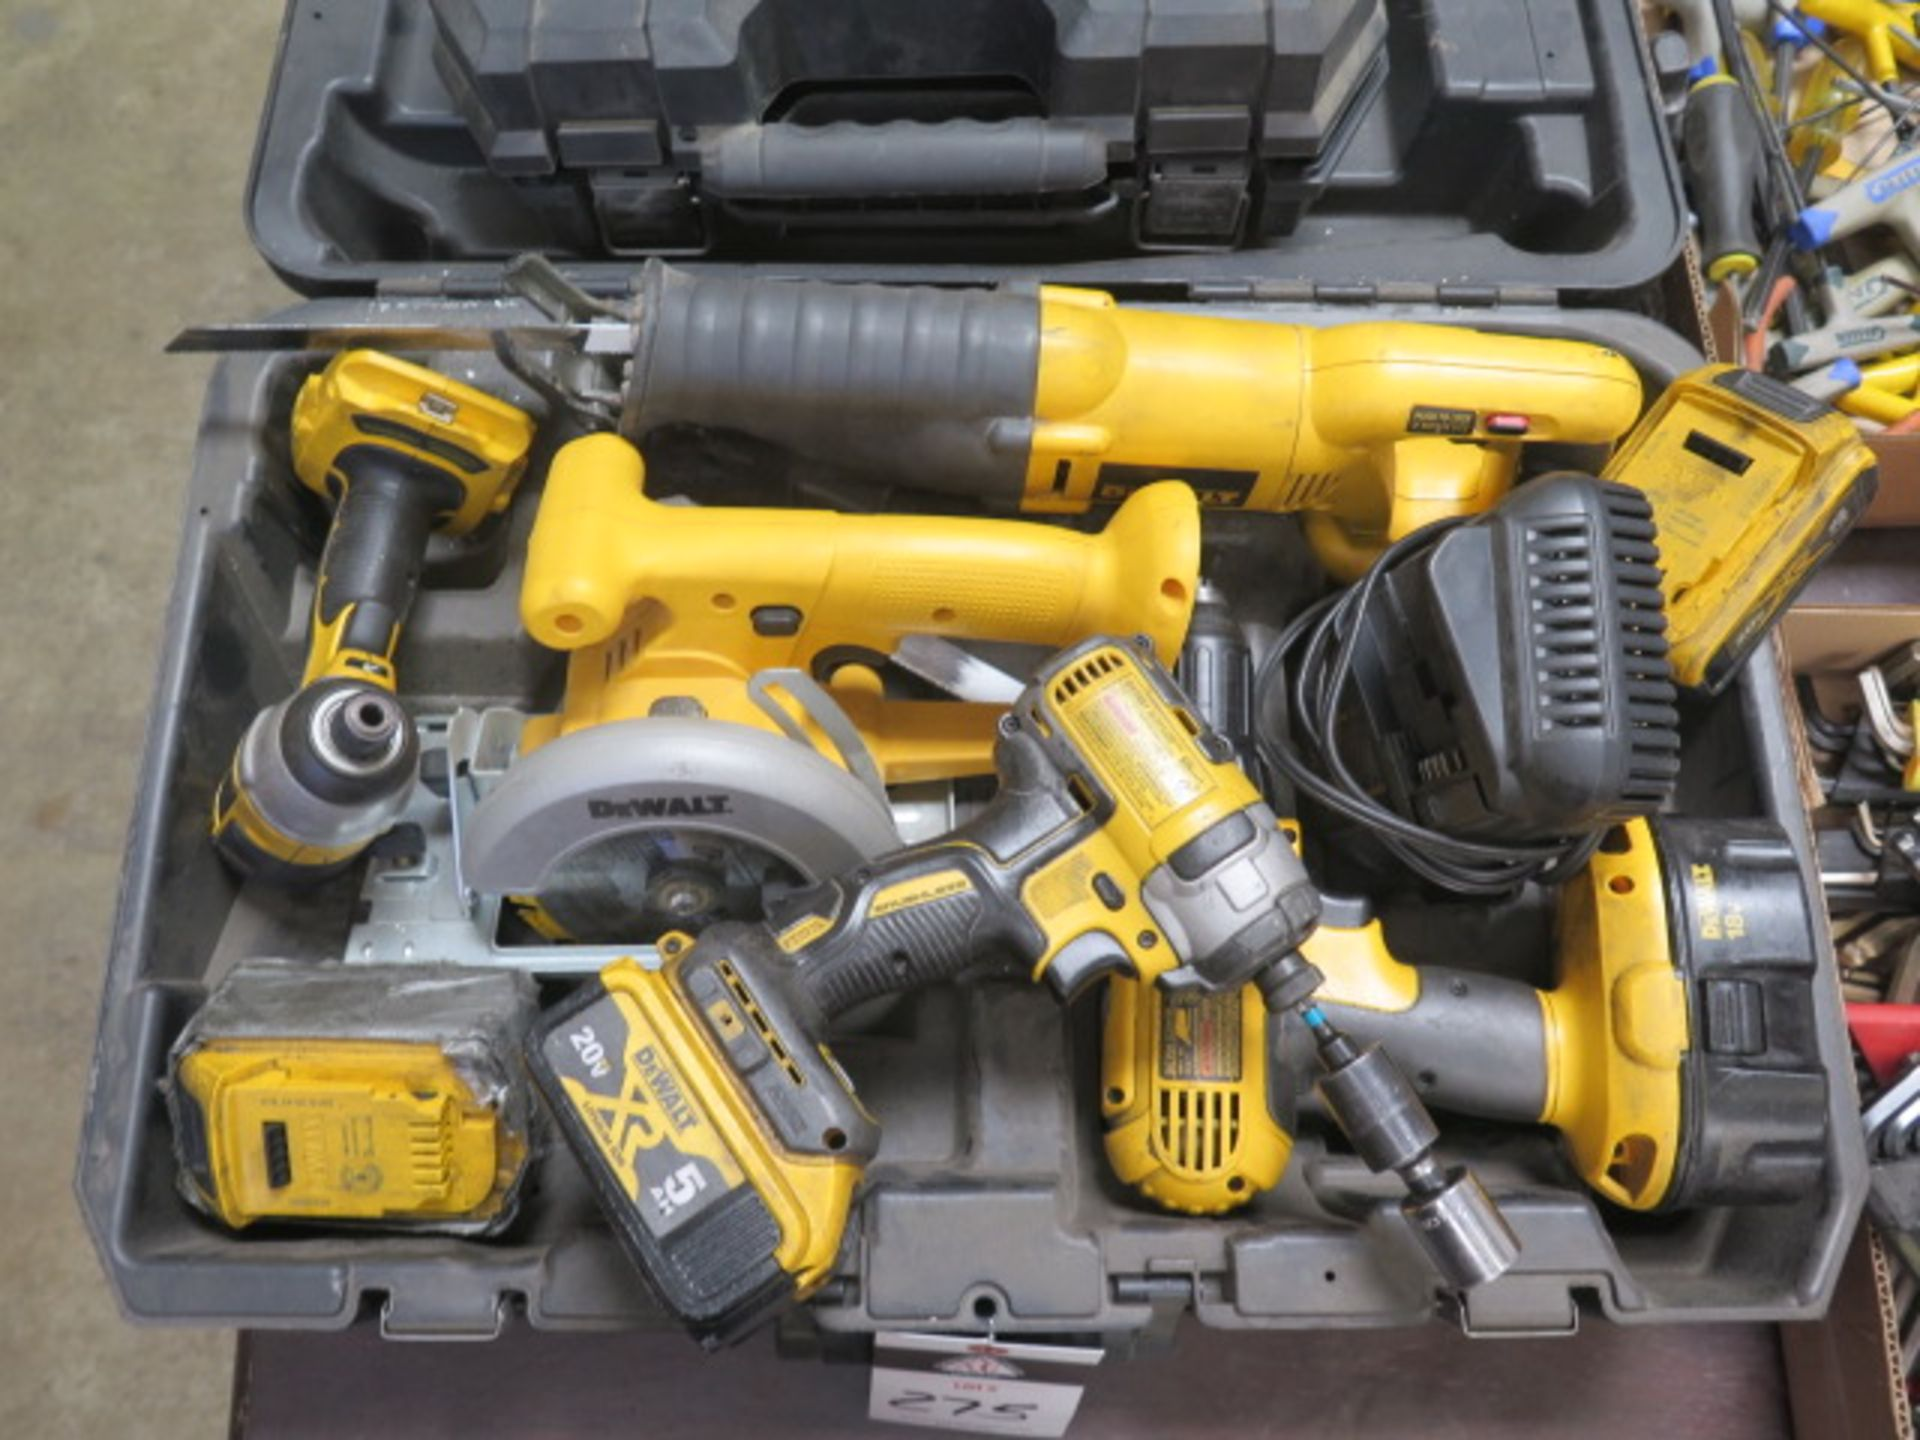 DeWalt Cordless Tools w/ Charger (SOLD AS-IS - NO WARRANTY) - Image 2 of 9